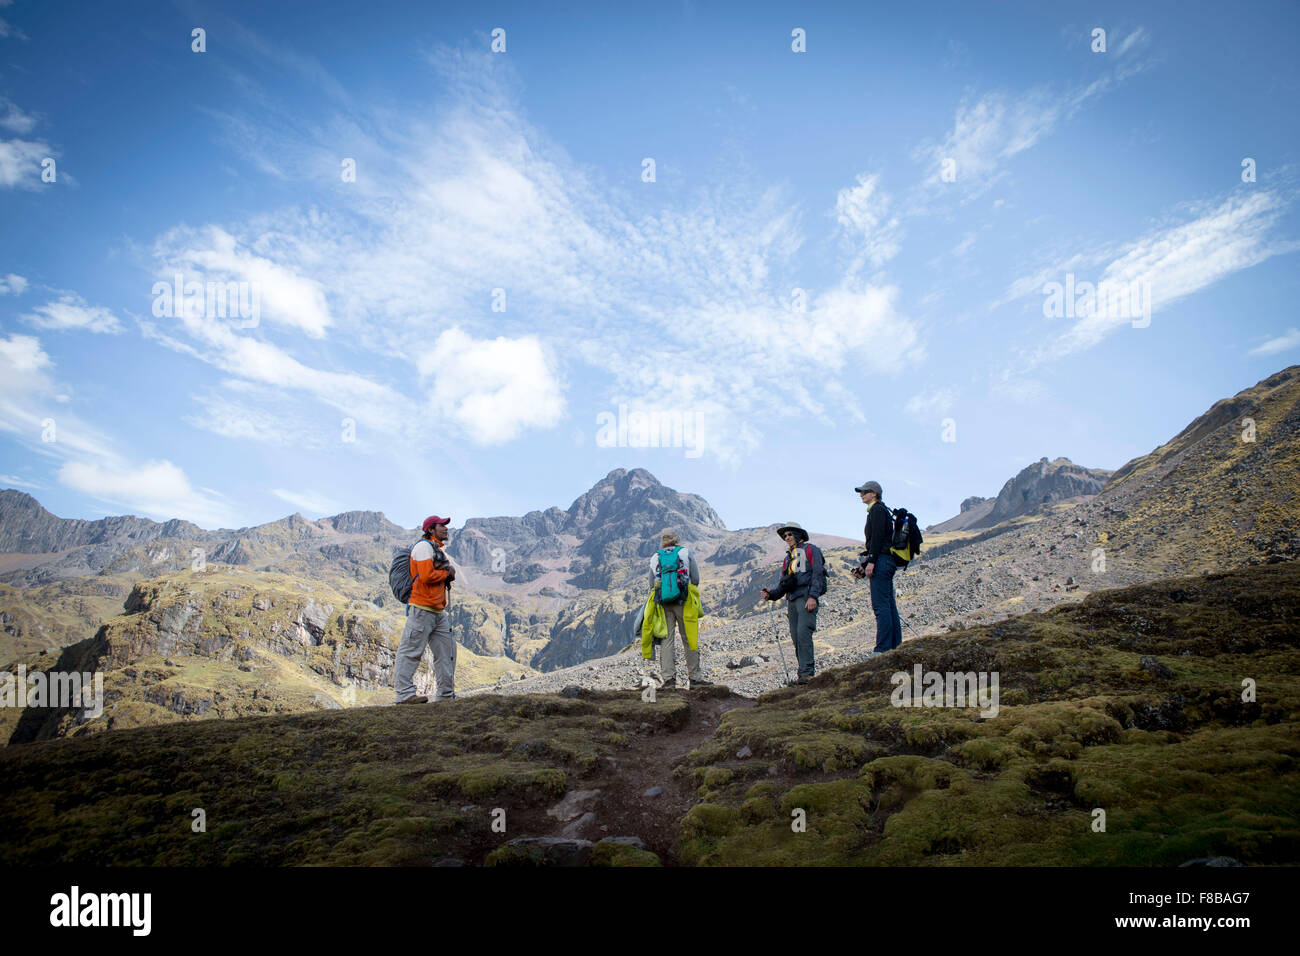 The Lares District of Peru. Tourists on a trek take a break - Stock Image